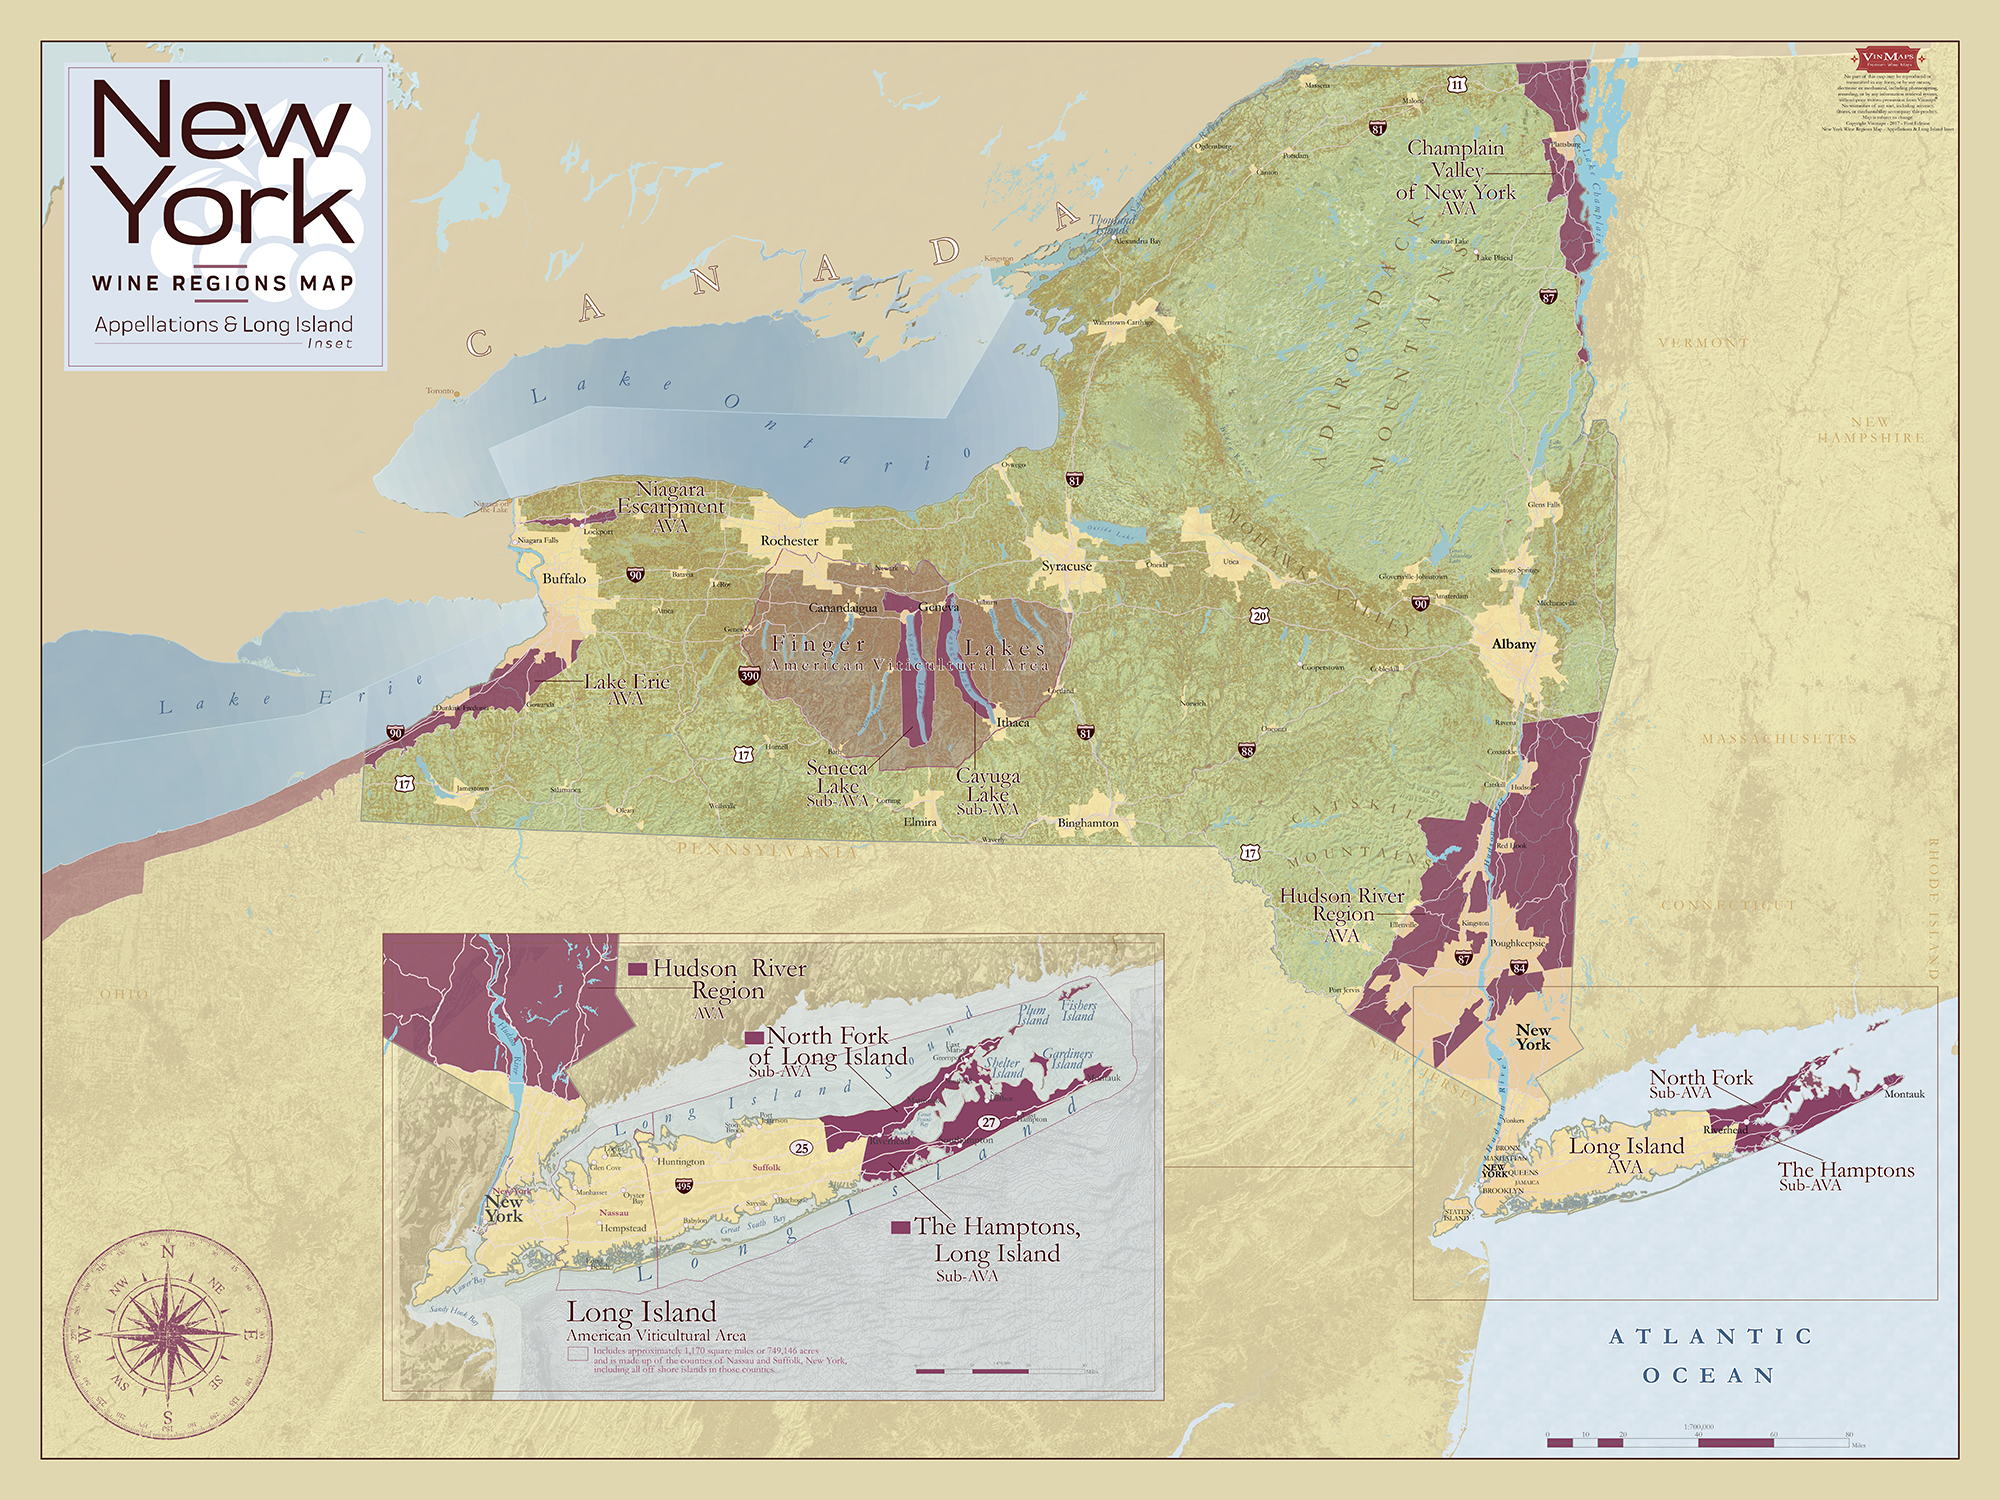 Map Of New York And Long Island.New York Wine Regions Map Appellations Long Island Inset